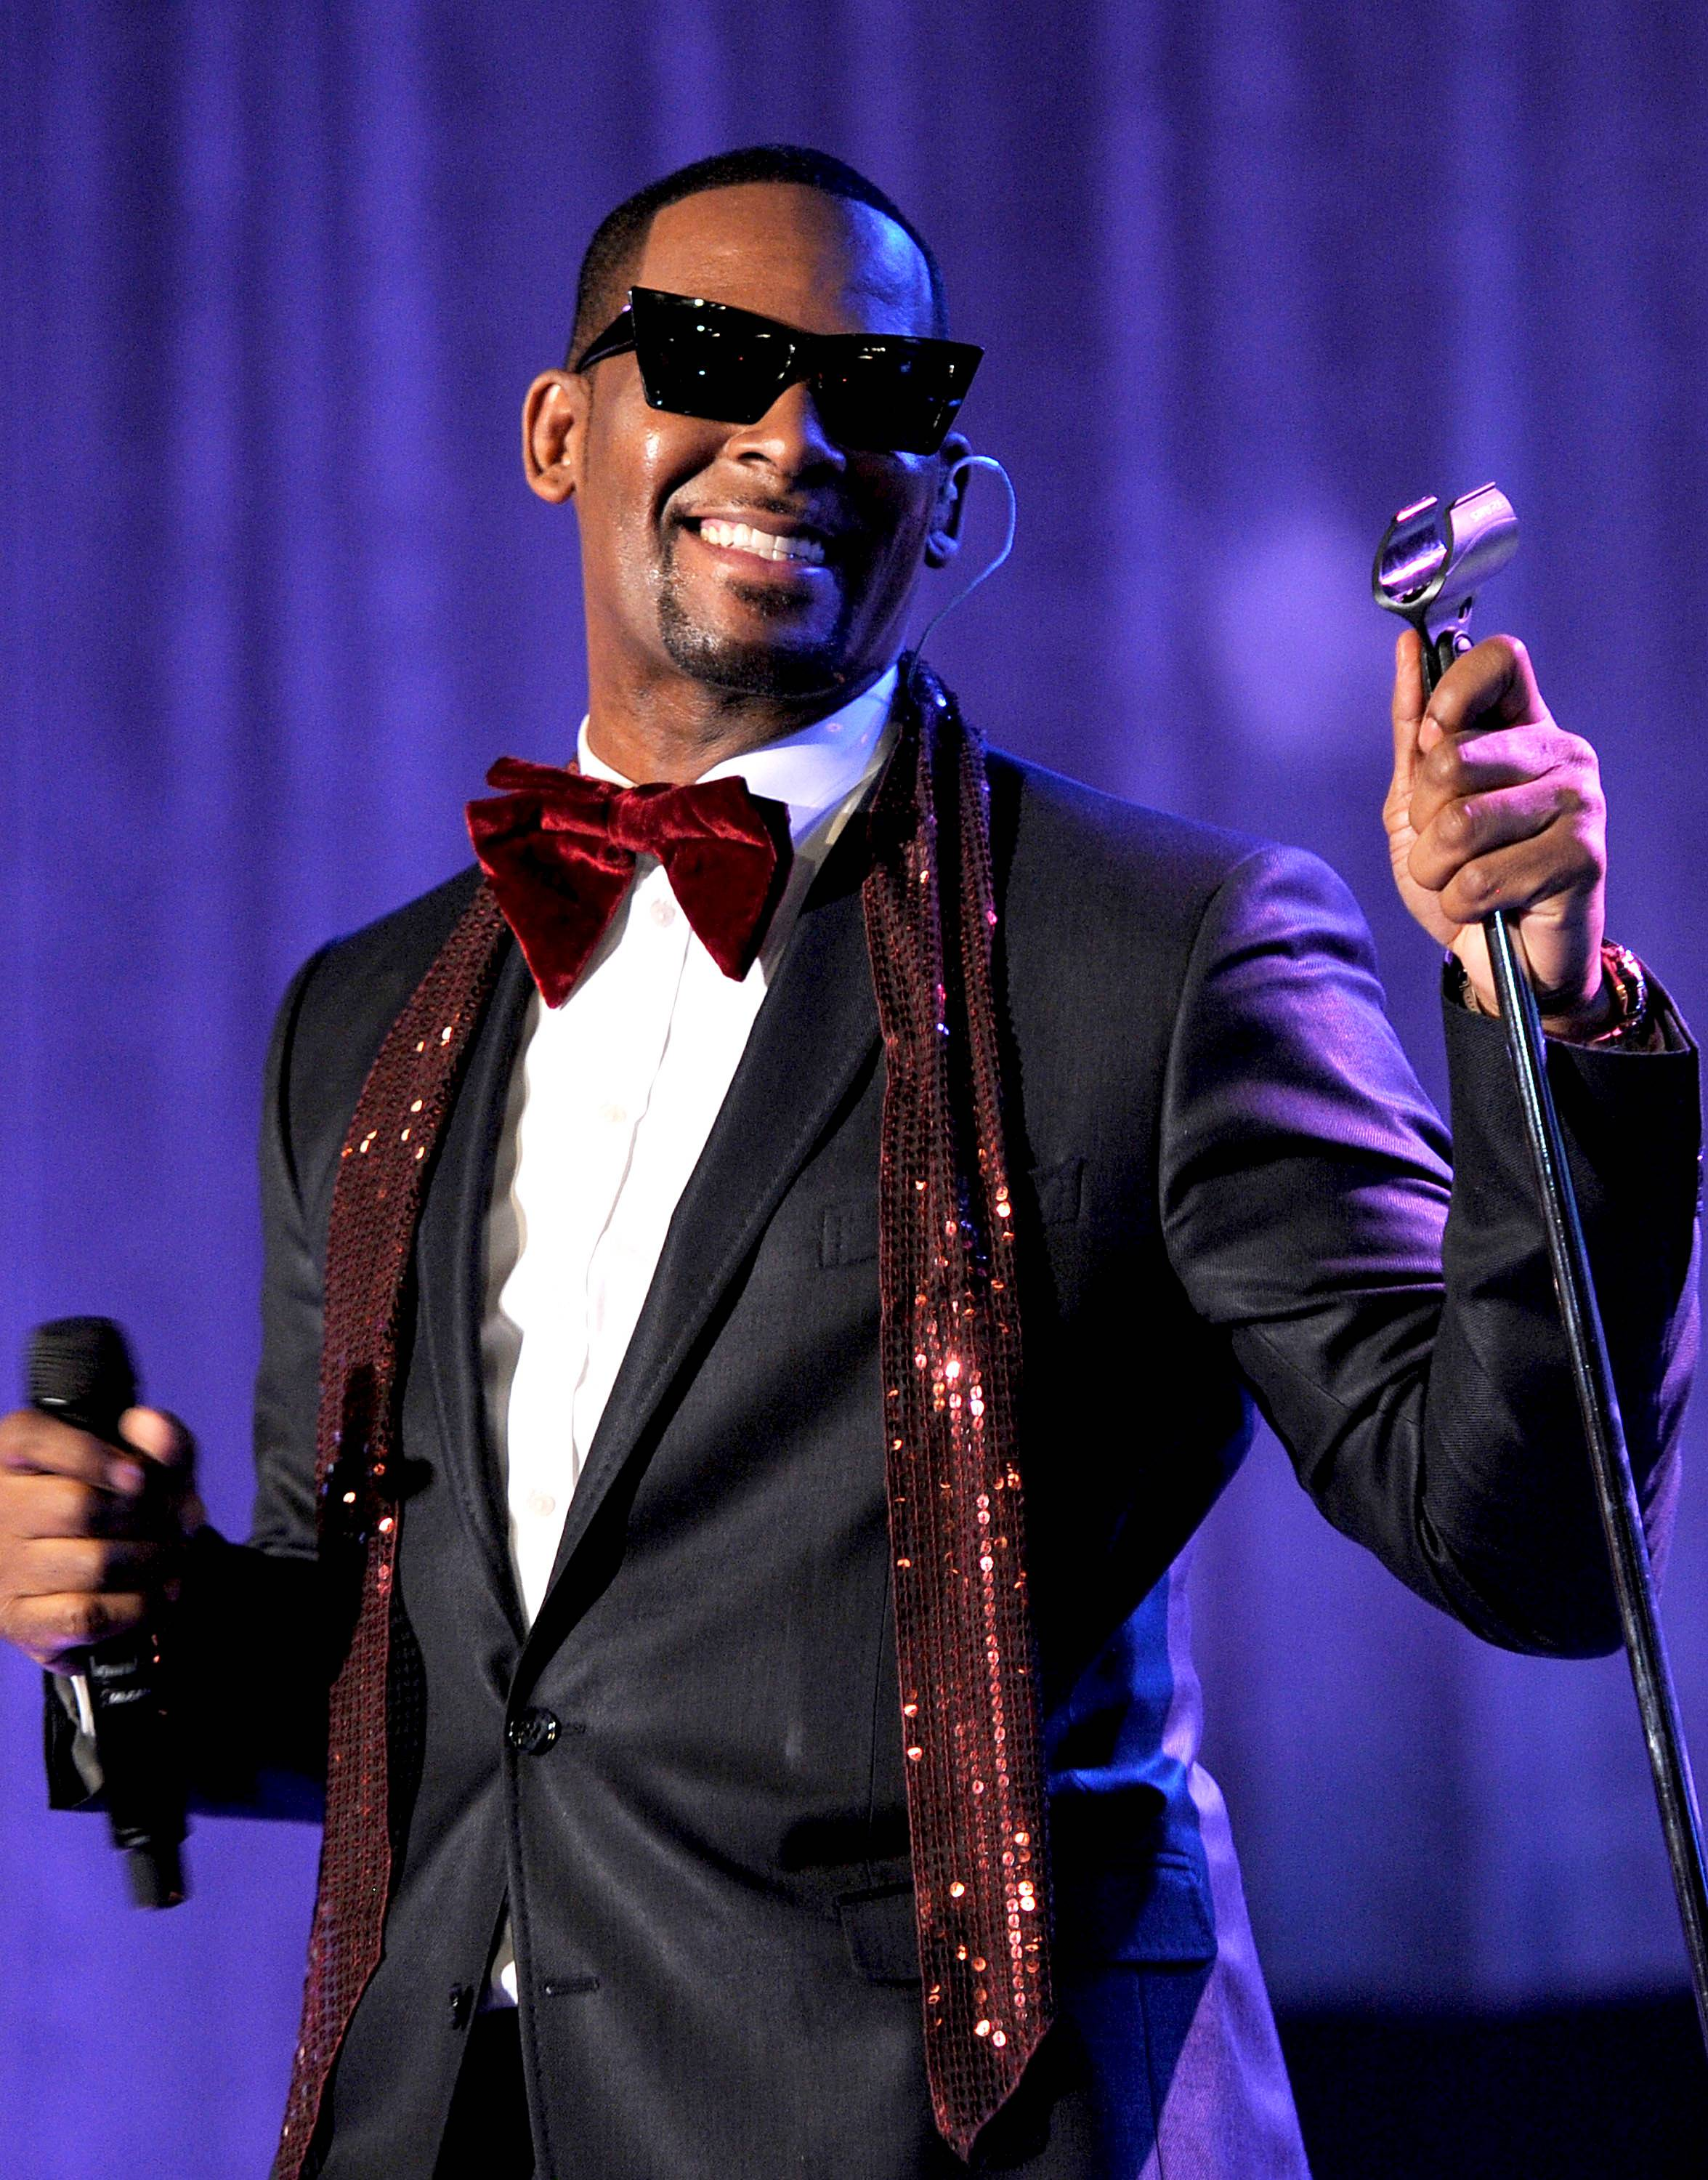 """R. Kelly (@KellZodiac)  - TWEET: """"It's been a long time coming but I finally feel a lot better about my throat since the surgery and this is the first song I wrote. Enjoy!"""" Shortly after confirming that his memoir would be released next year, R. Kelly releases his first song recorded since his throat surgery. (Photo: Larry Busacca/Getty Images)"""